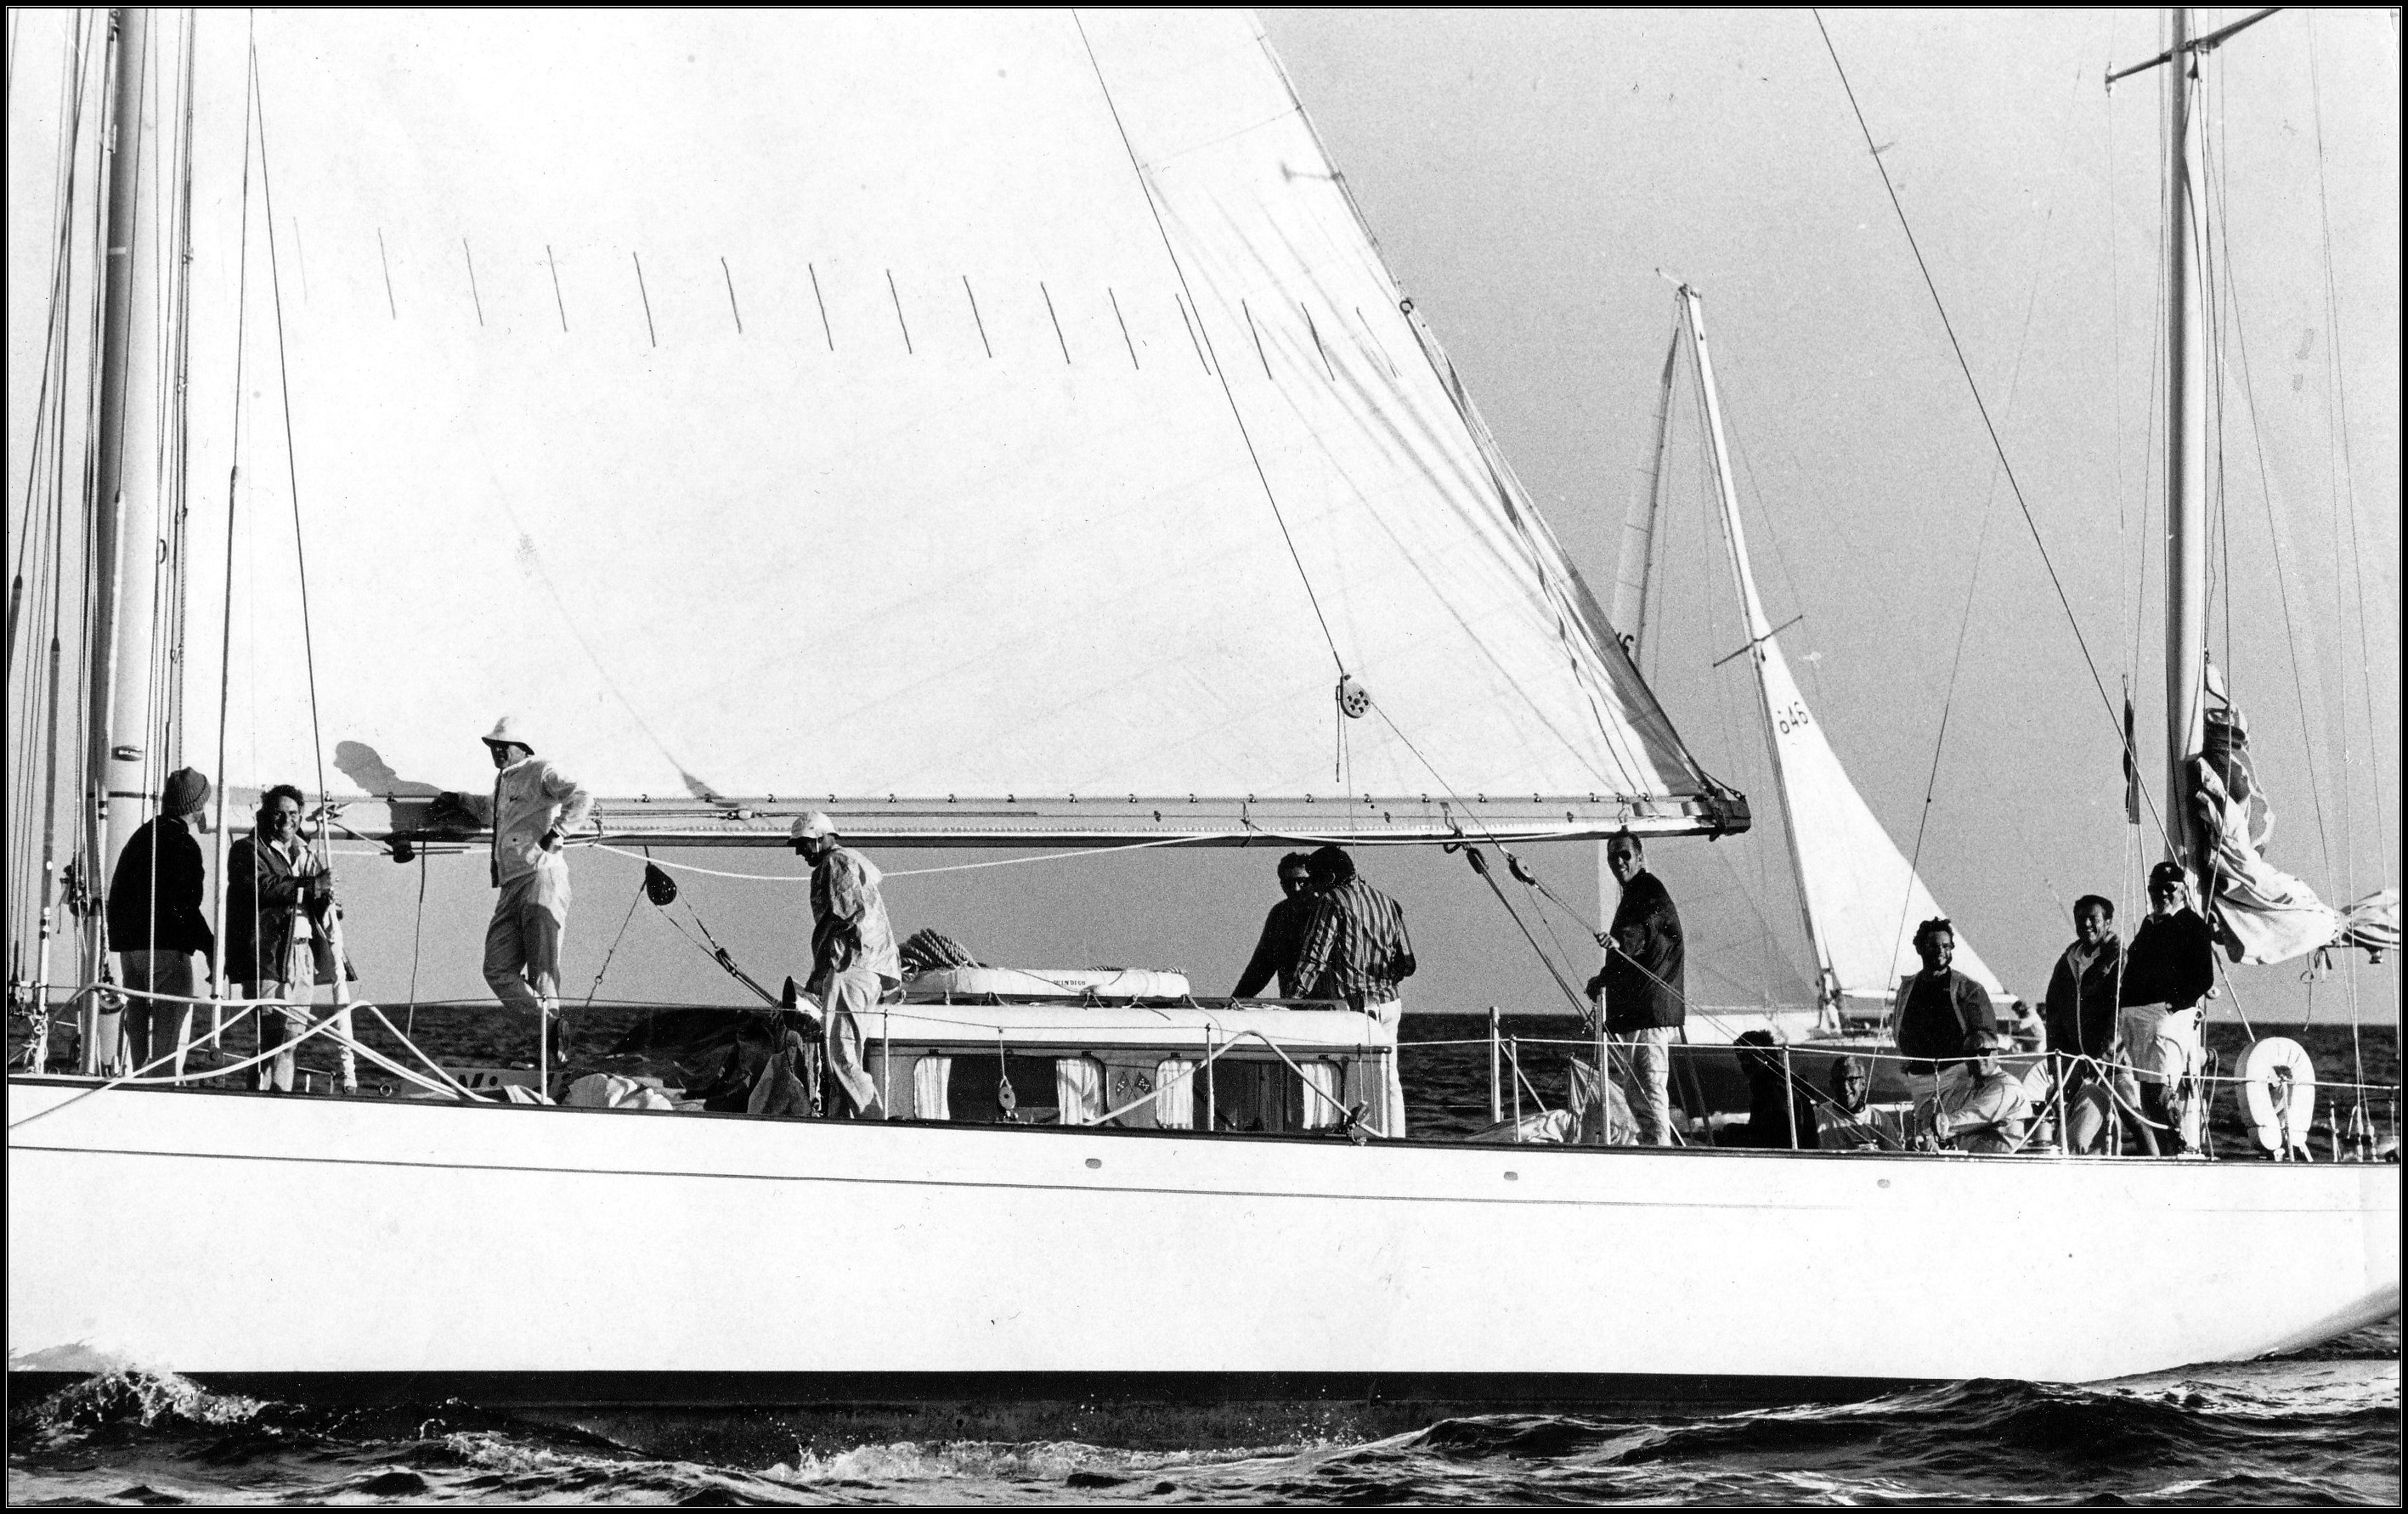 A broadside photo of sailboat Windigo under sail with crew